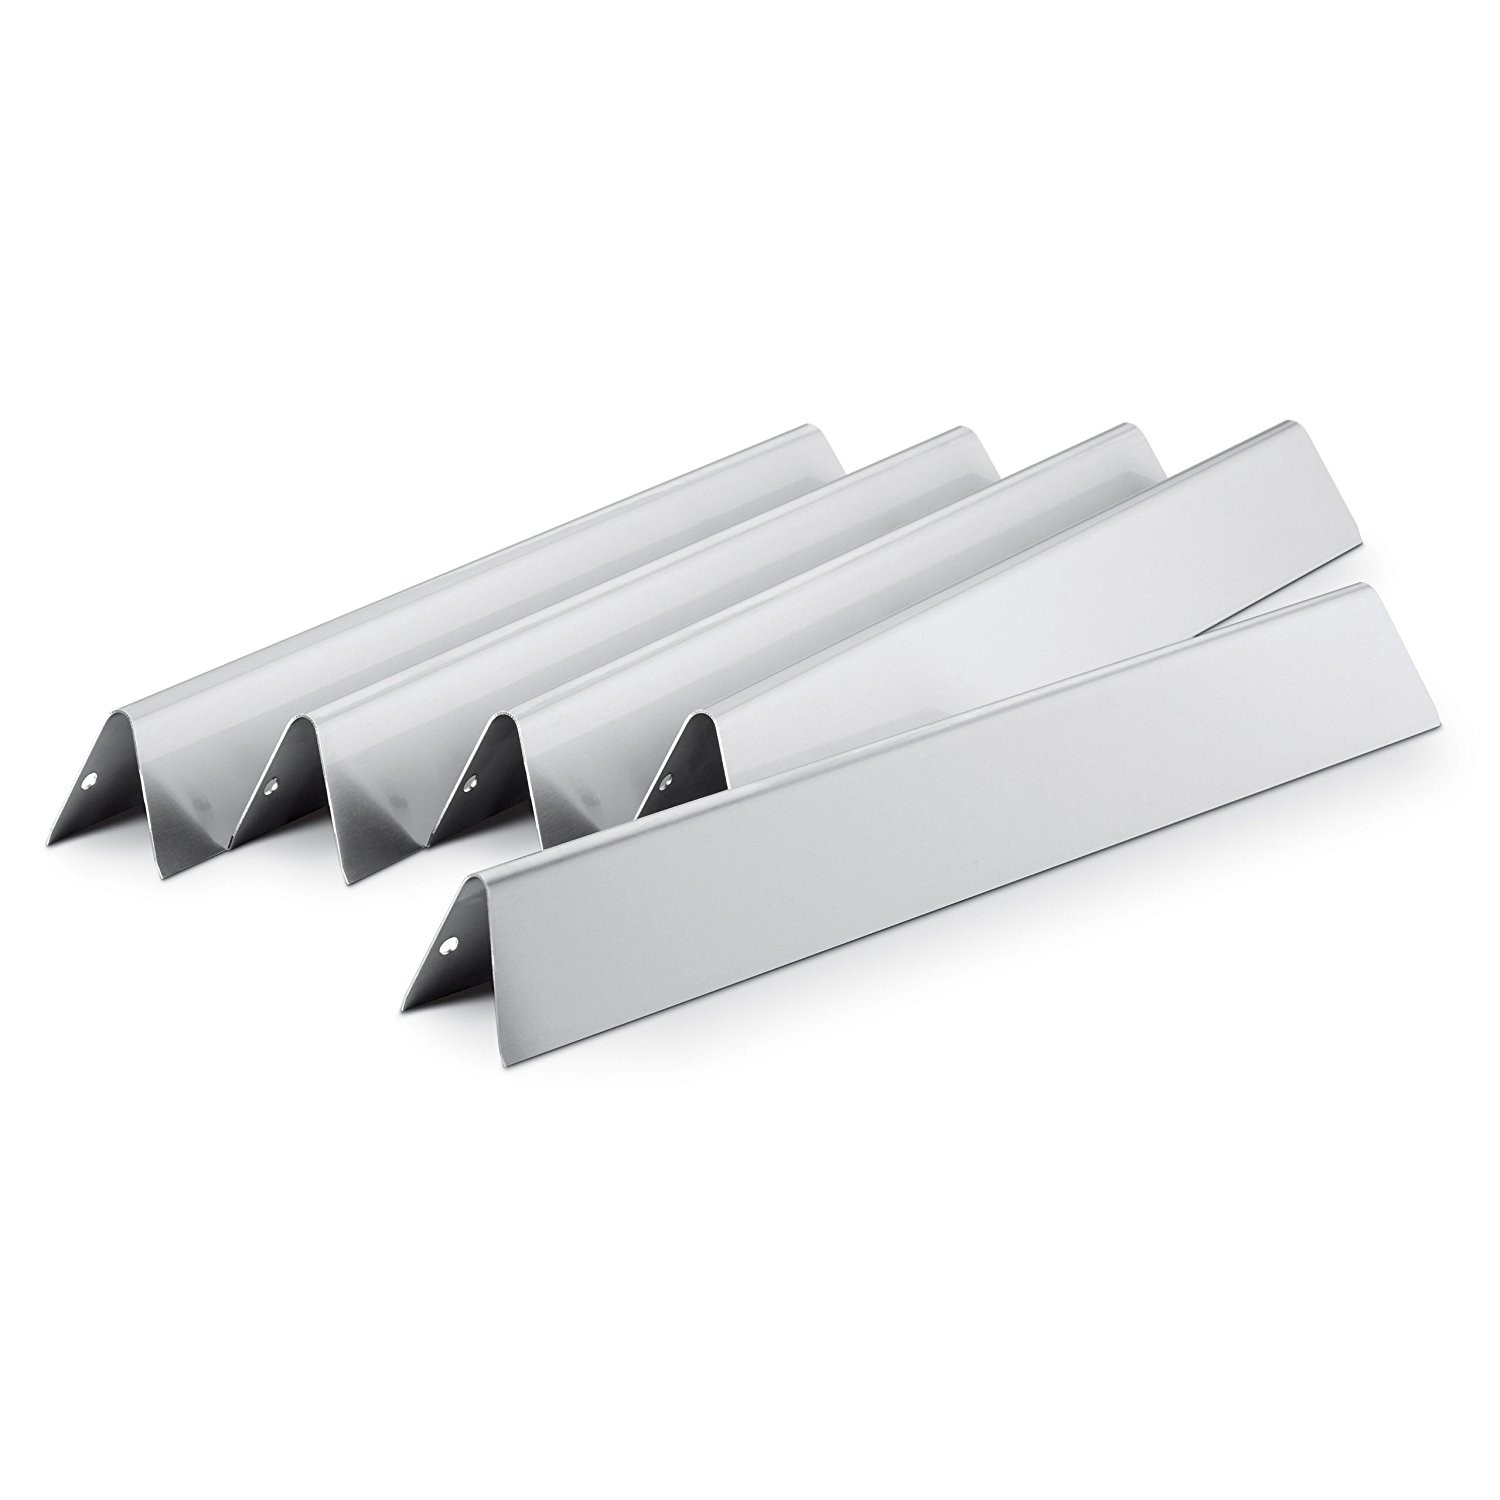 STAINLESS STEEL FLAVORIZER BARS: GENESIS 300 SERIES(FRONT-MOUNTED CONTROLS)